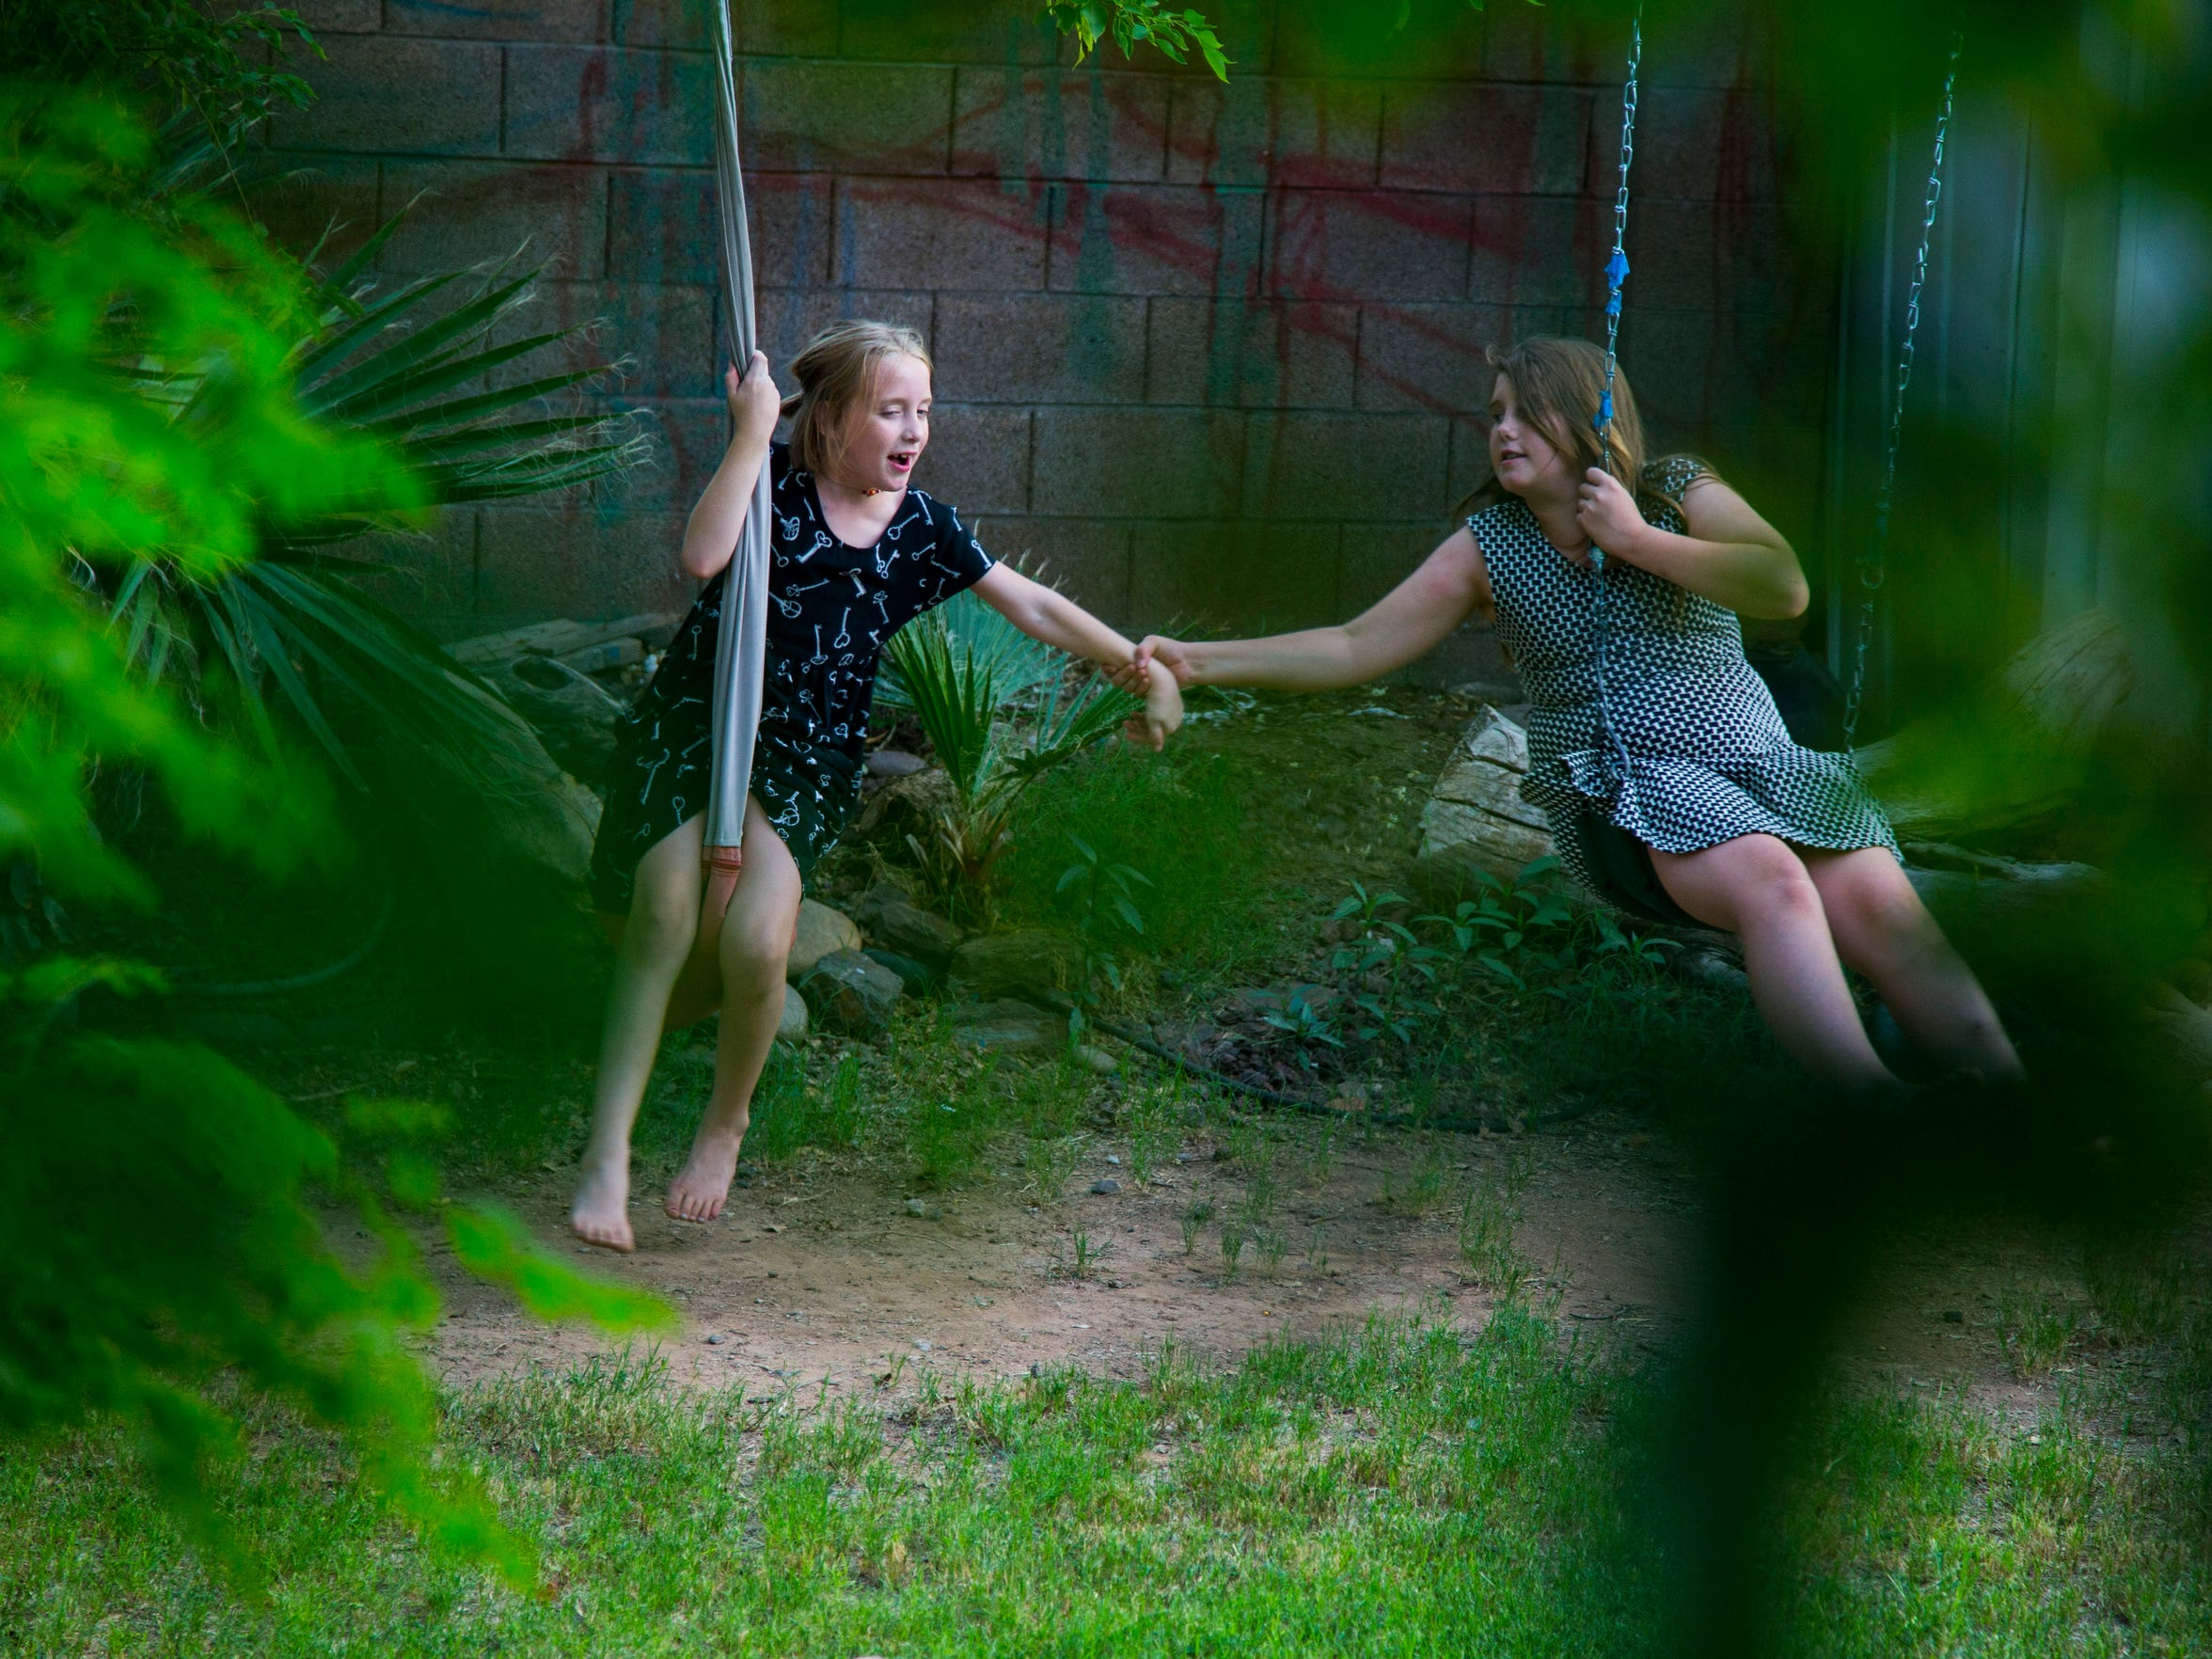 Miranda DeYoung, 12, on right, who suffers from Asperger